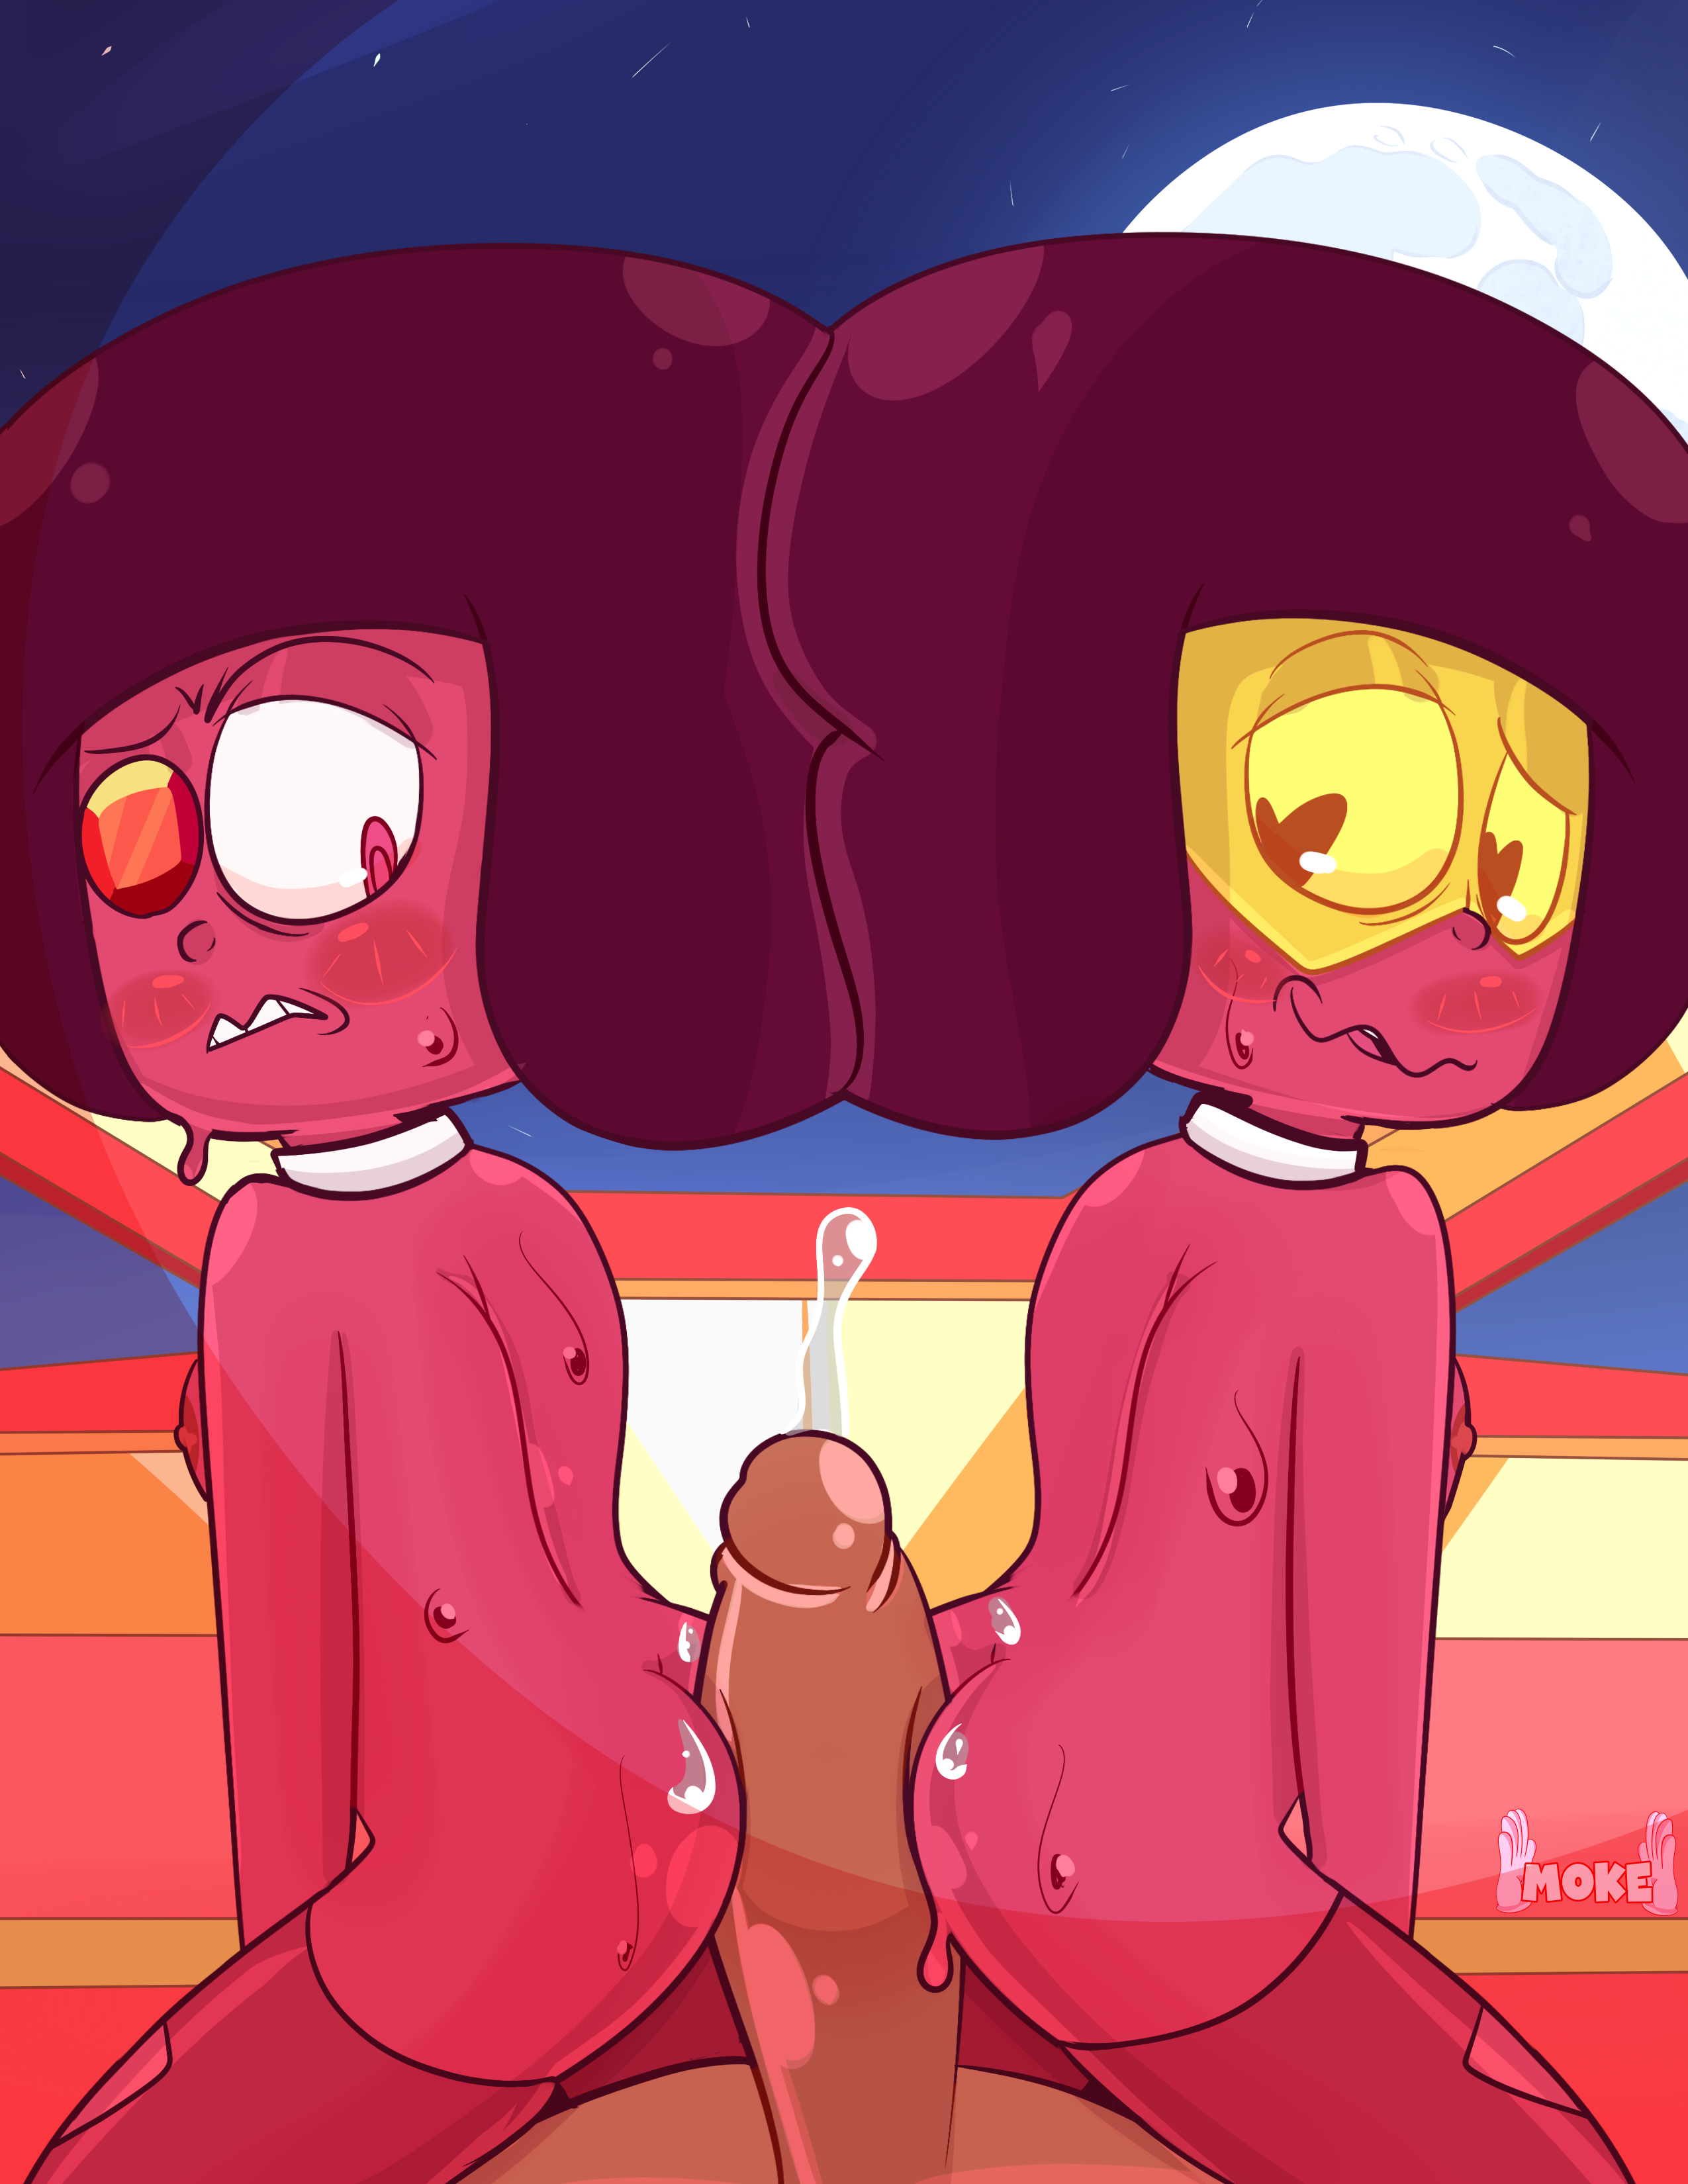 Double Ruby buttjob commission